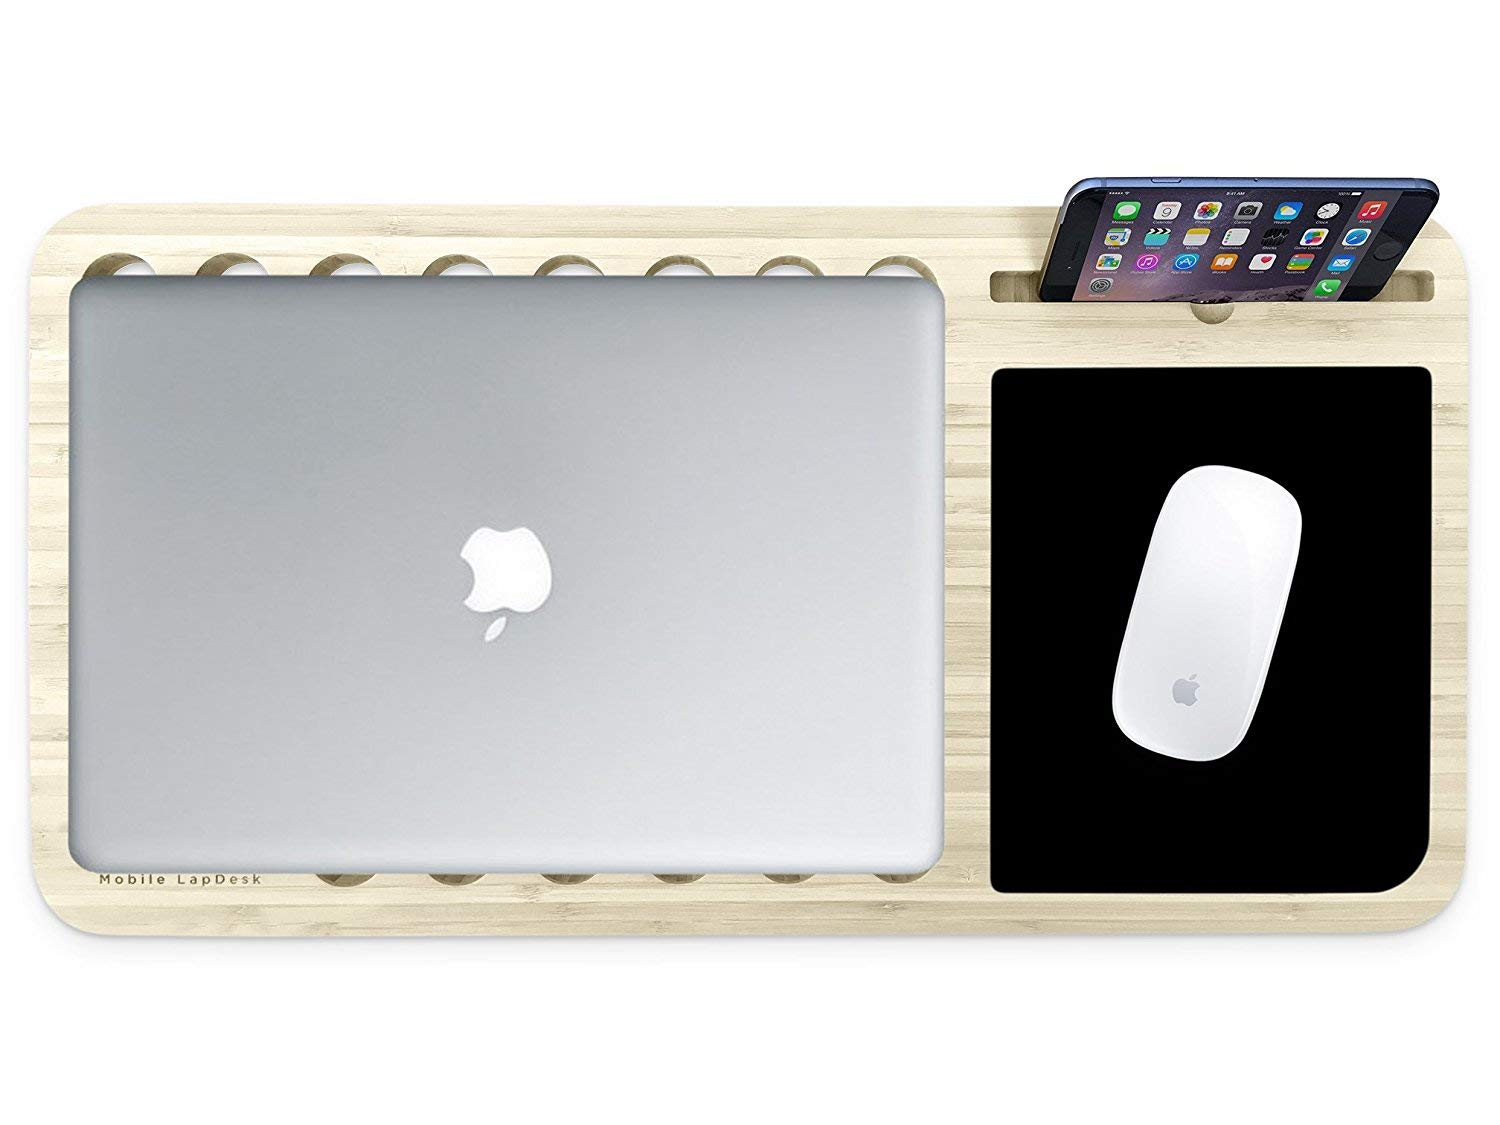 Slate: Mobile LapDesk - The Essential Lap Desk by iSkelter